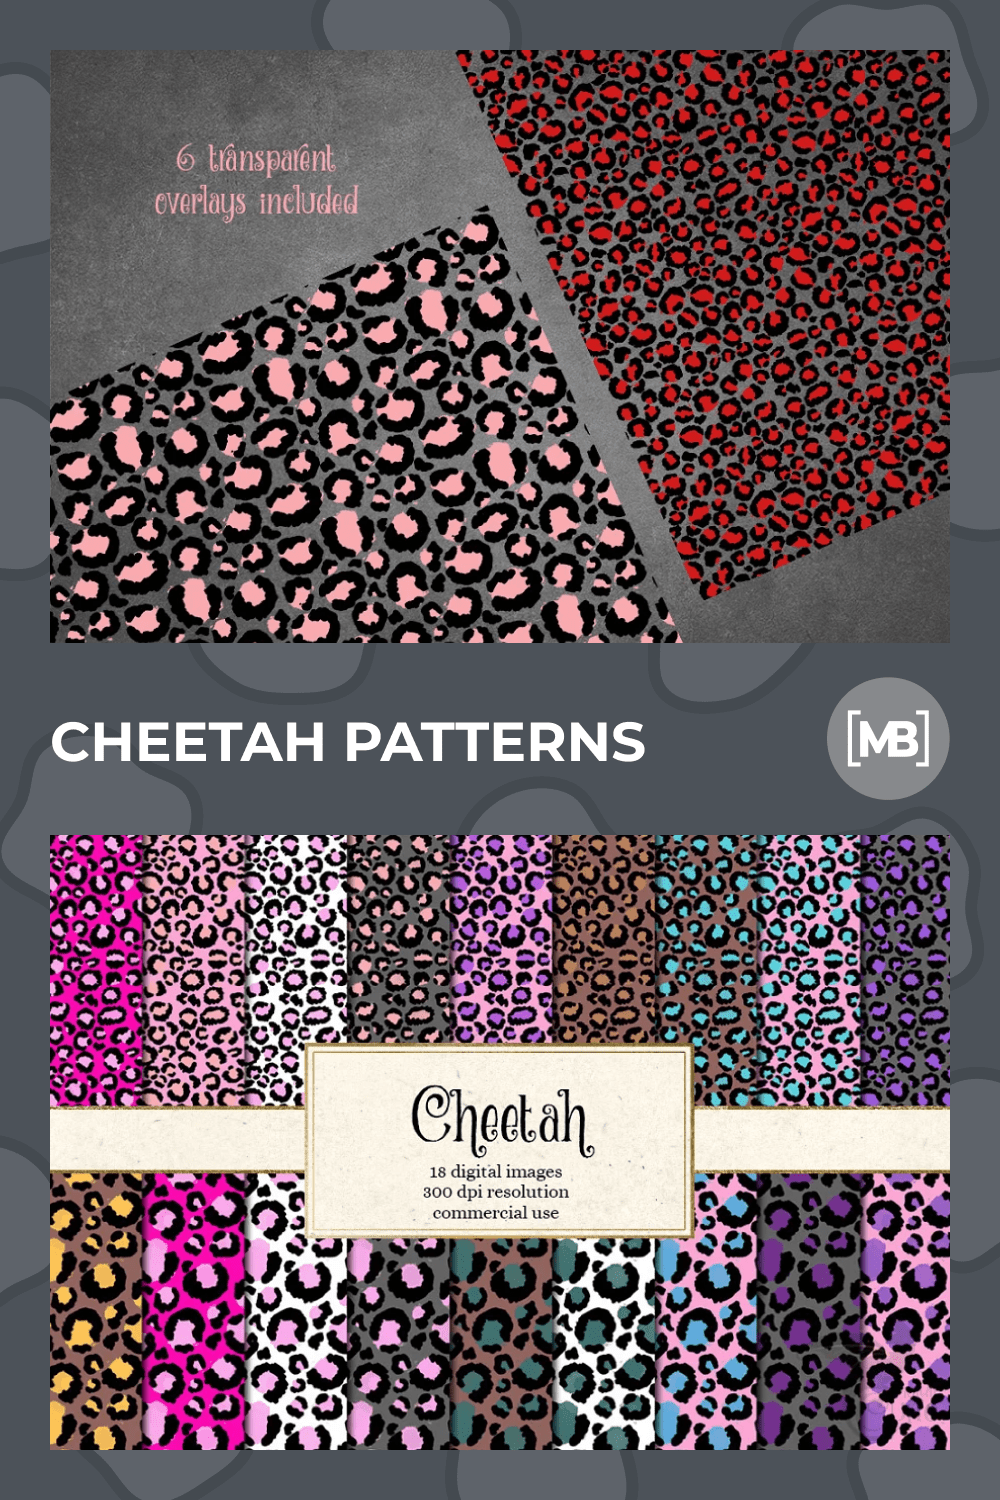 Colors diverse in animal prints.